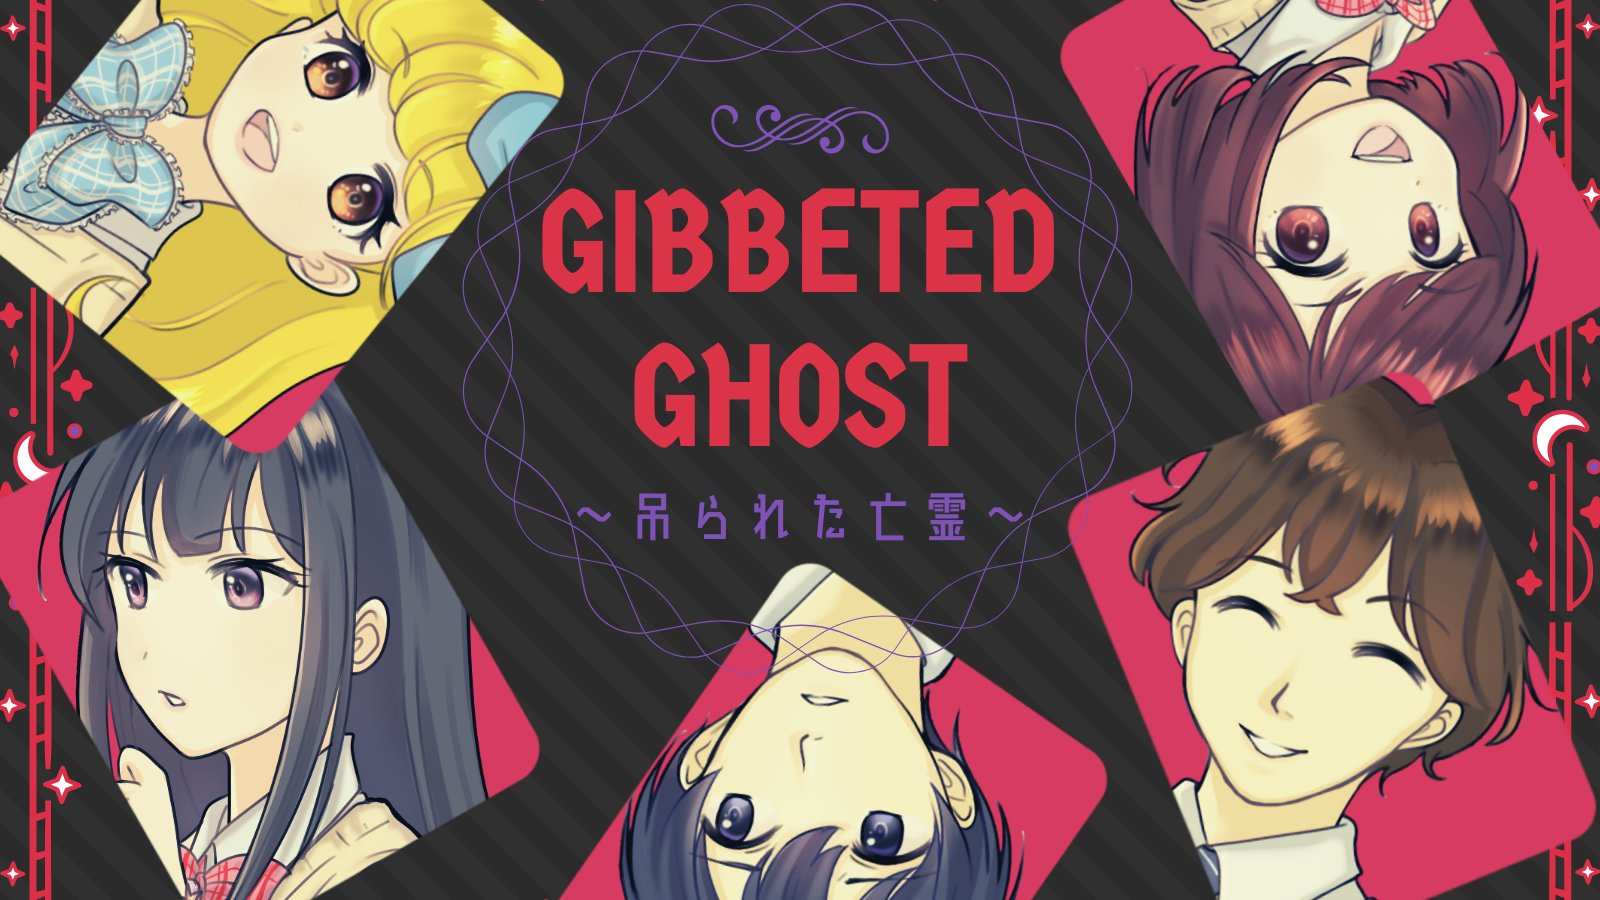 https://storage.googleapis.com/uzu_data/games/gibbetedghost/Gibbeted_Ghost.png